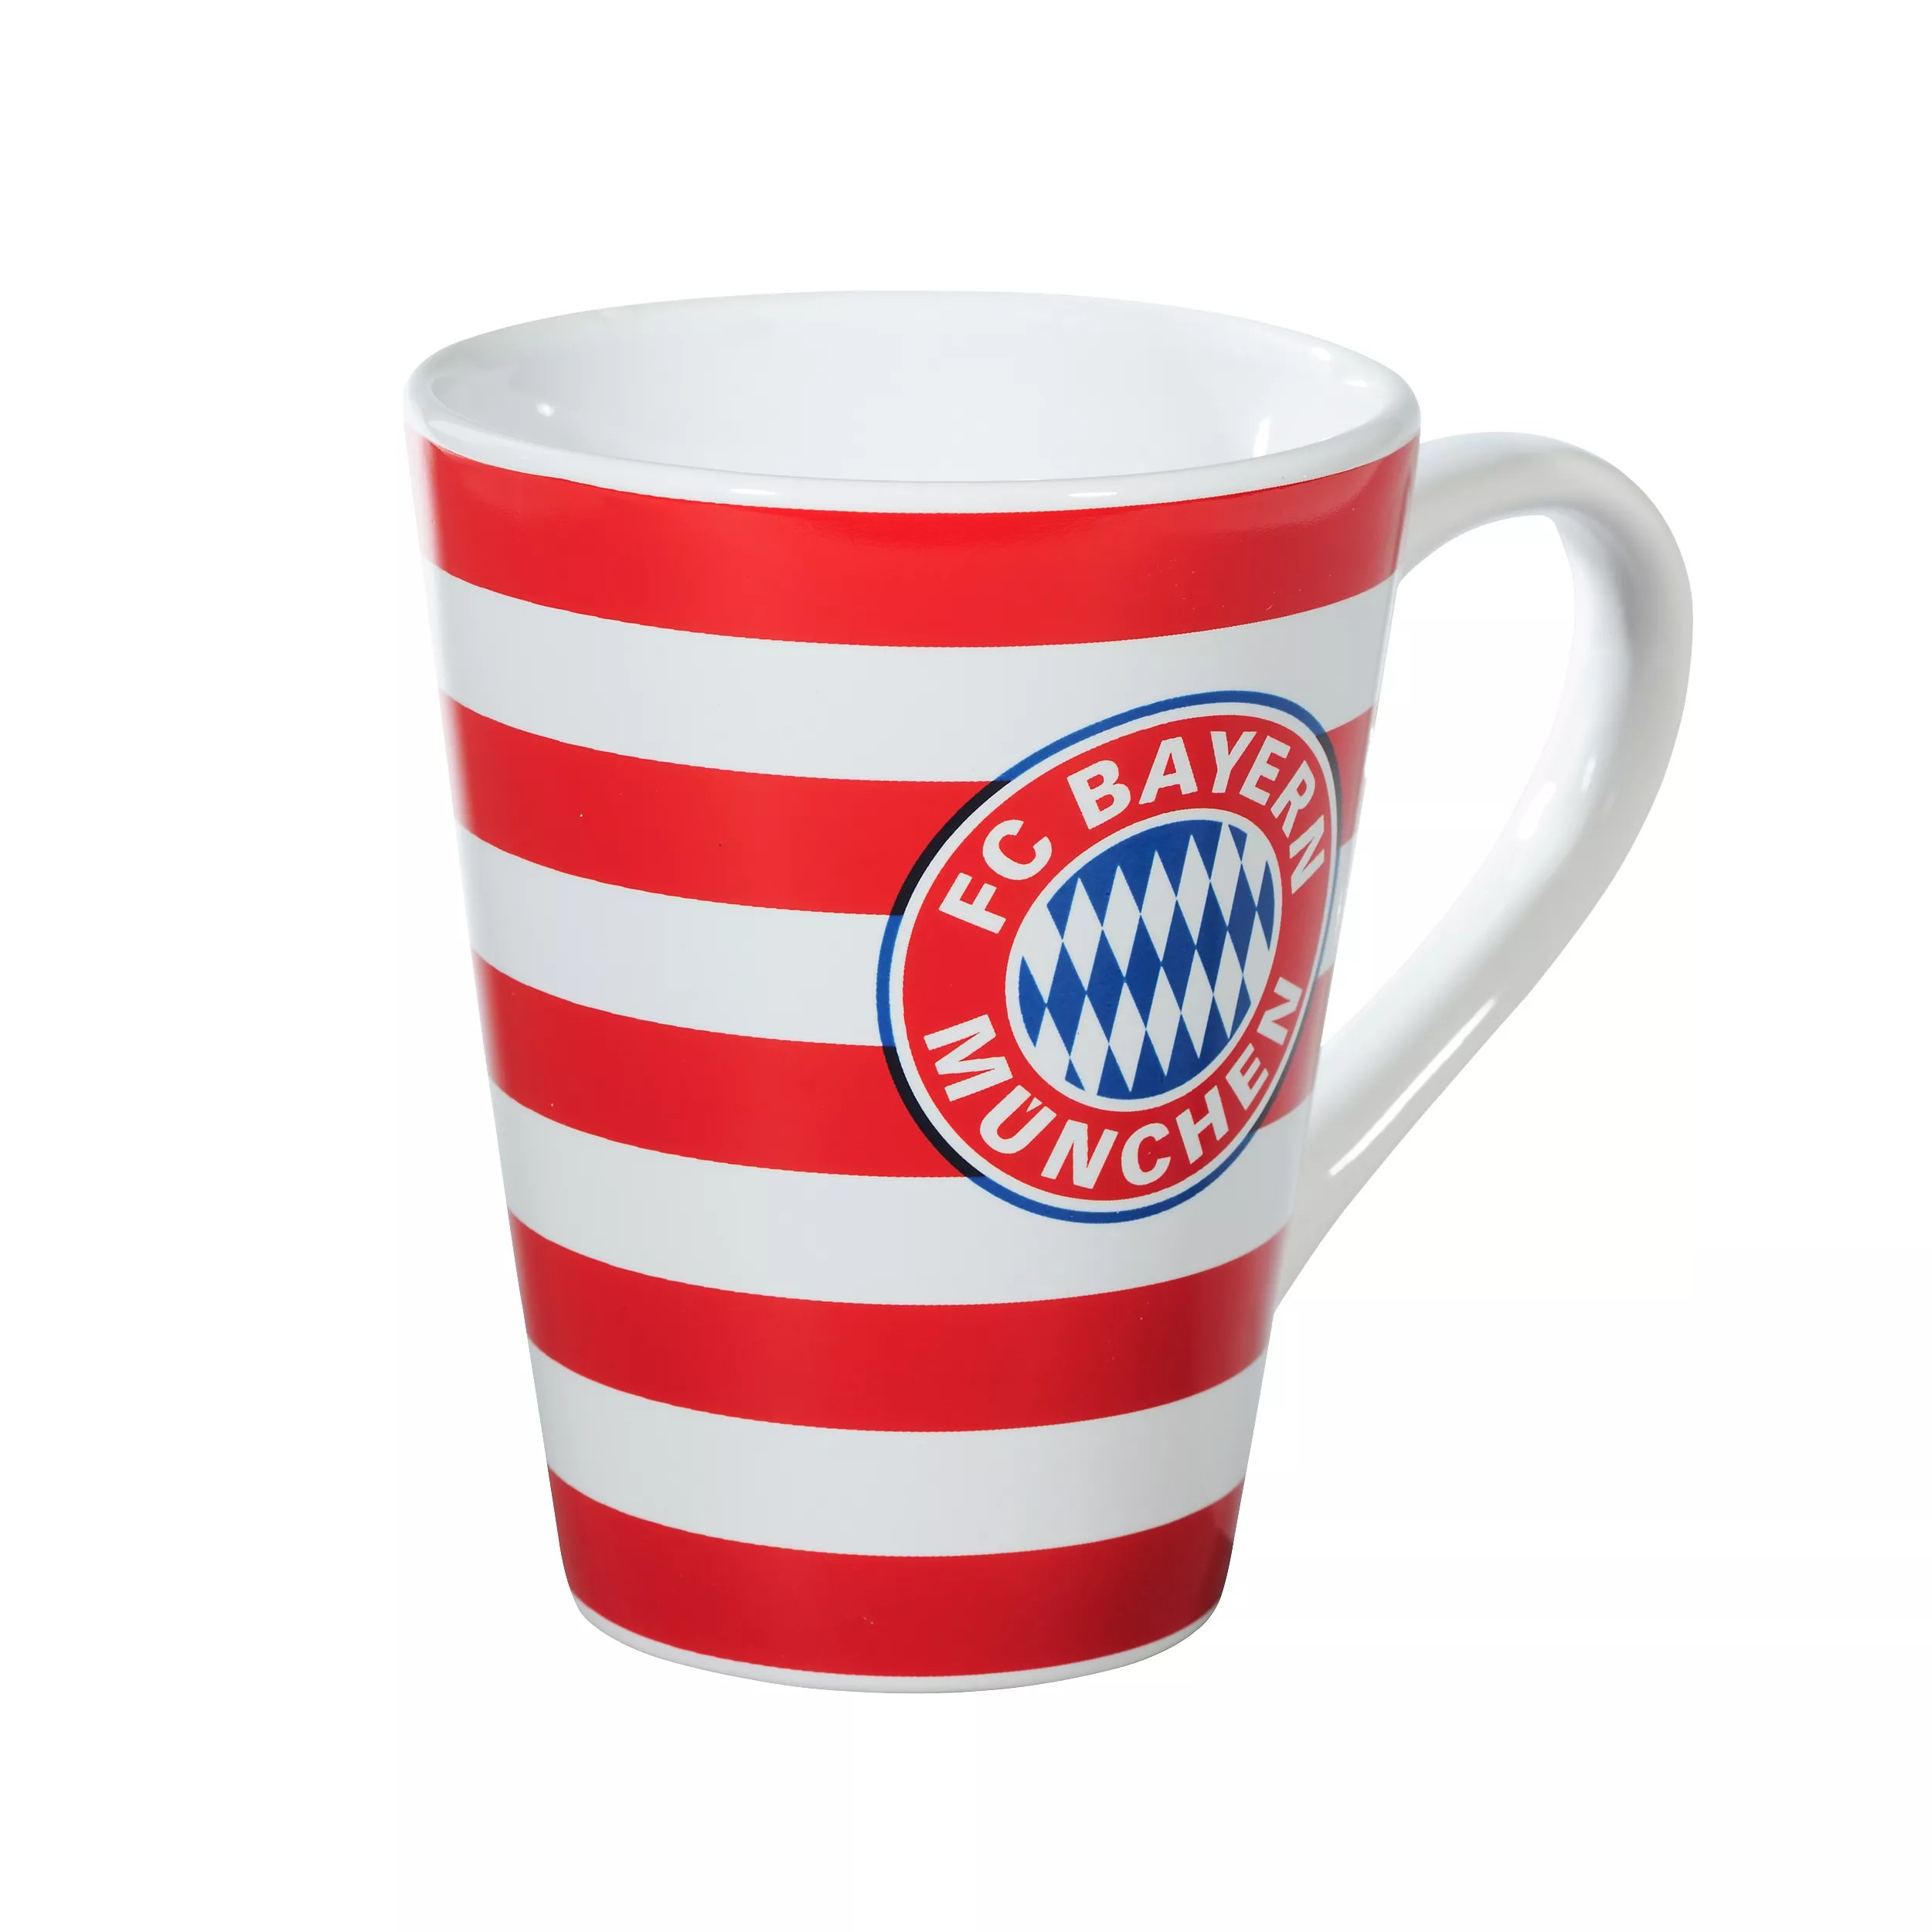 Xxl Tasse Xxl Mug Stripes